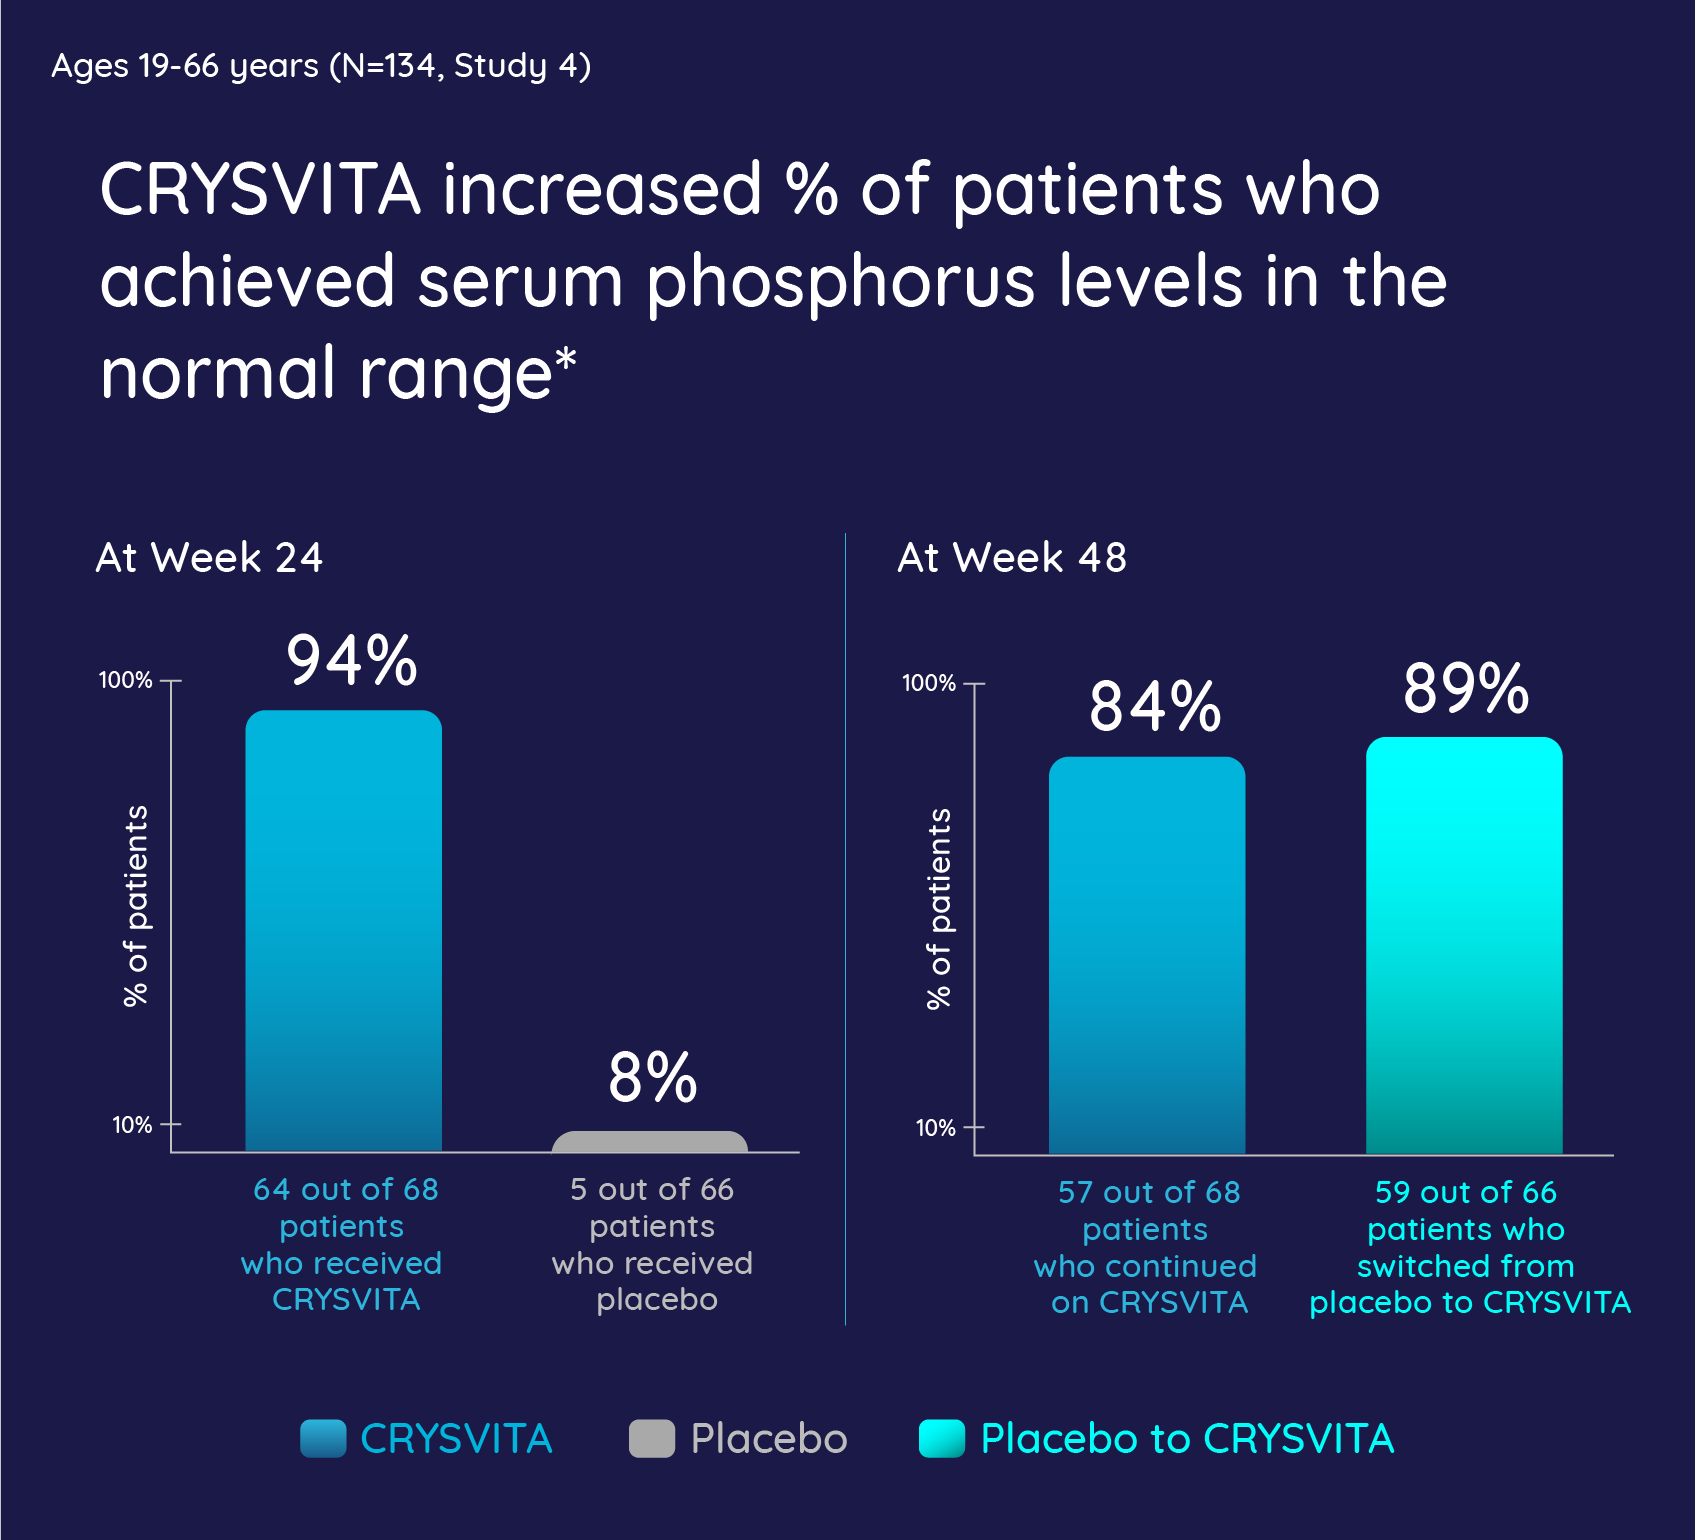 CRYSVITA increasd the percentage of patients who achieved serum phosphorus levels in the normal range